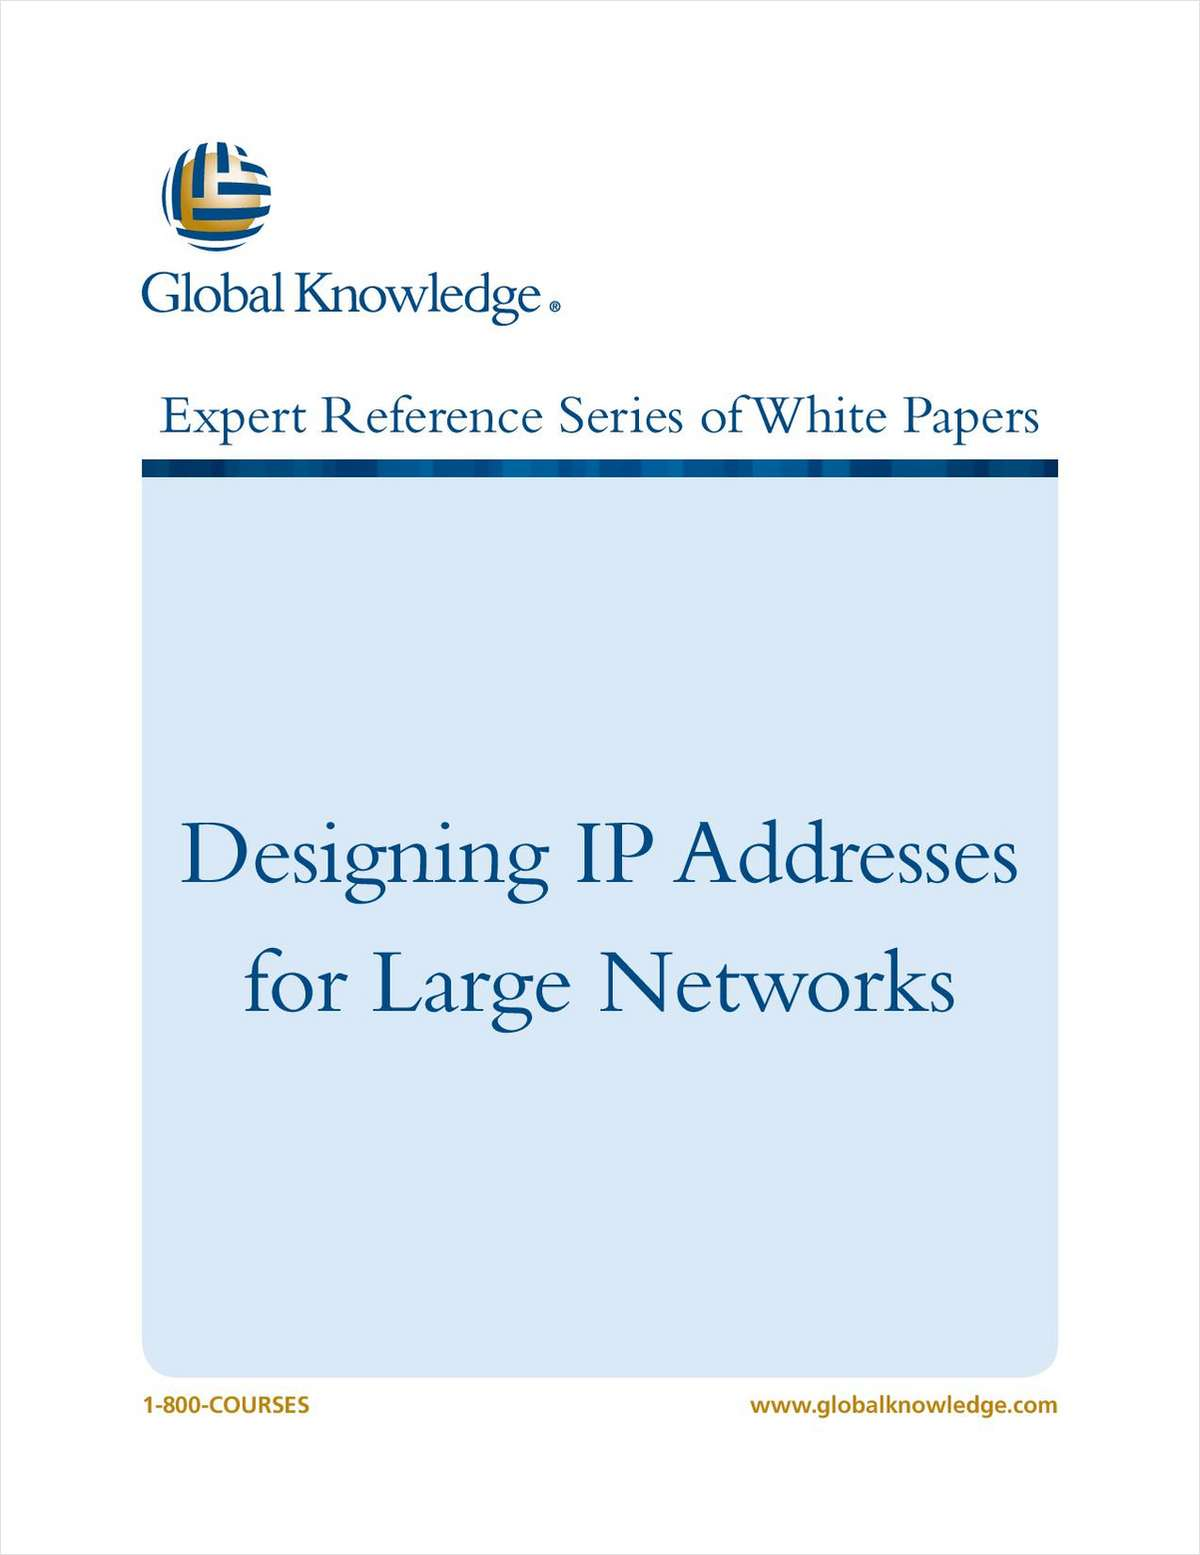 Designing IP Addresses for Large Networks